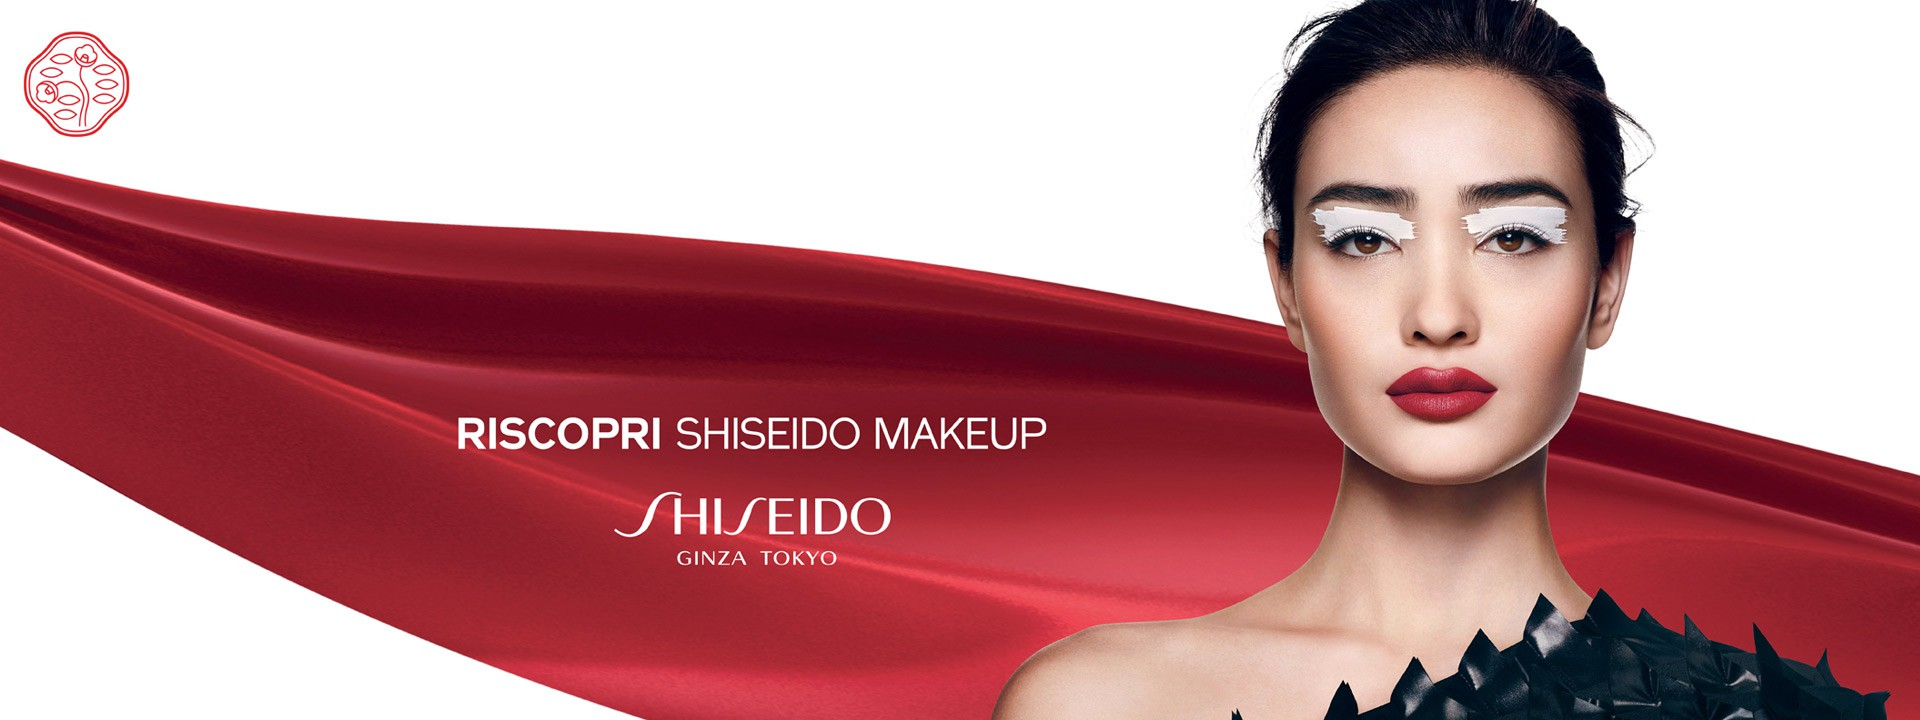 shiseido nuovo make-up